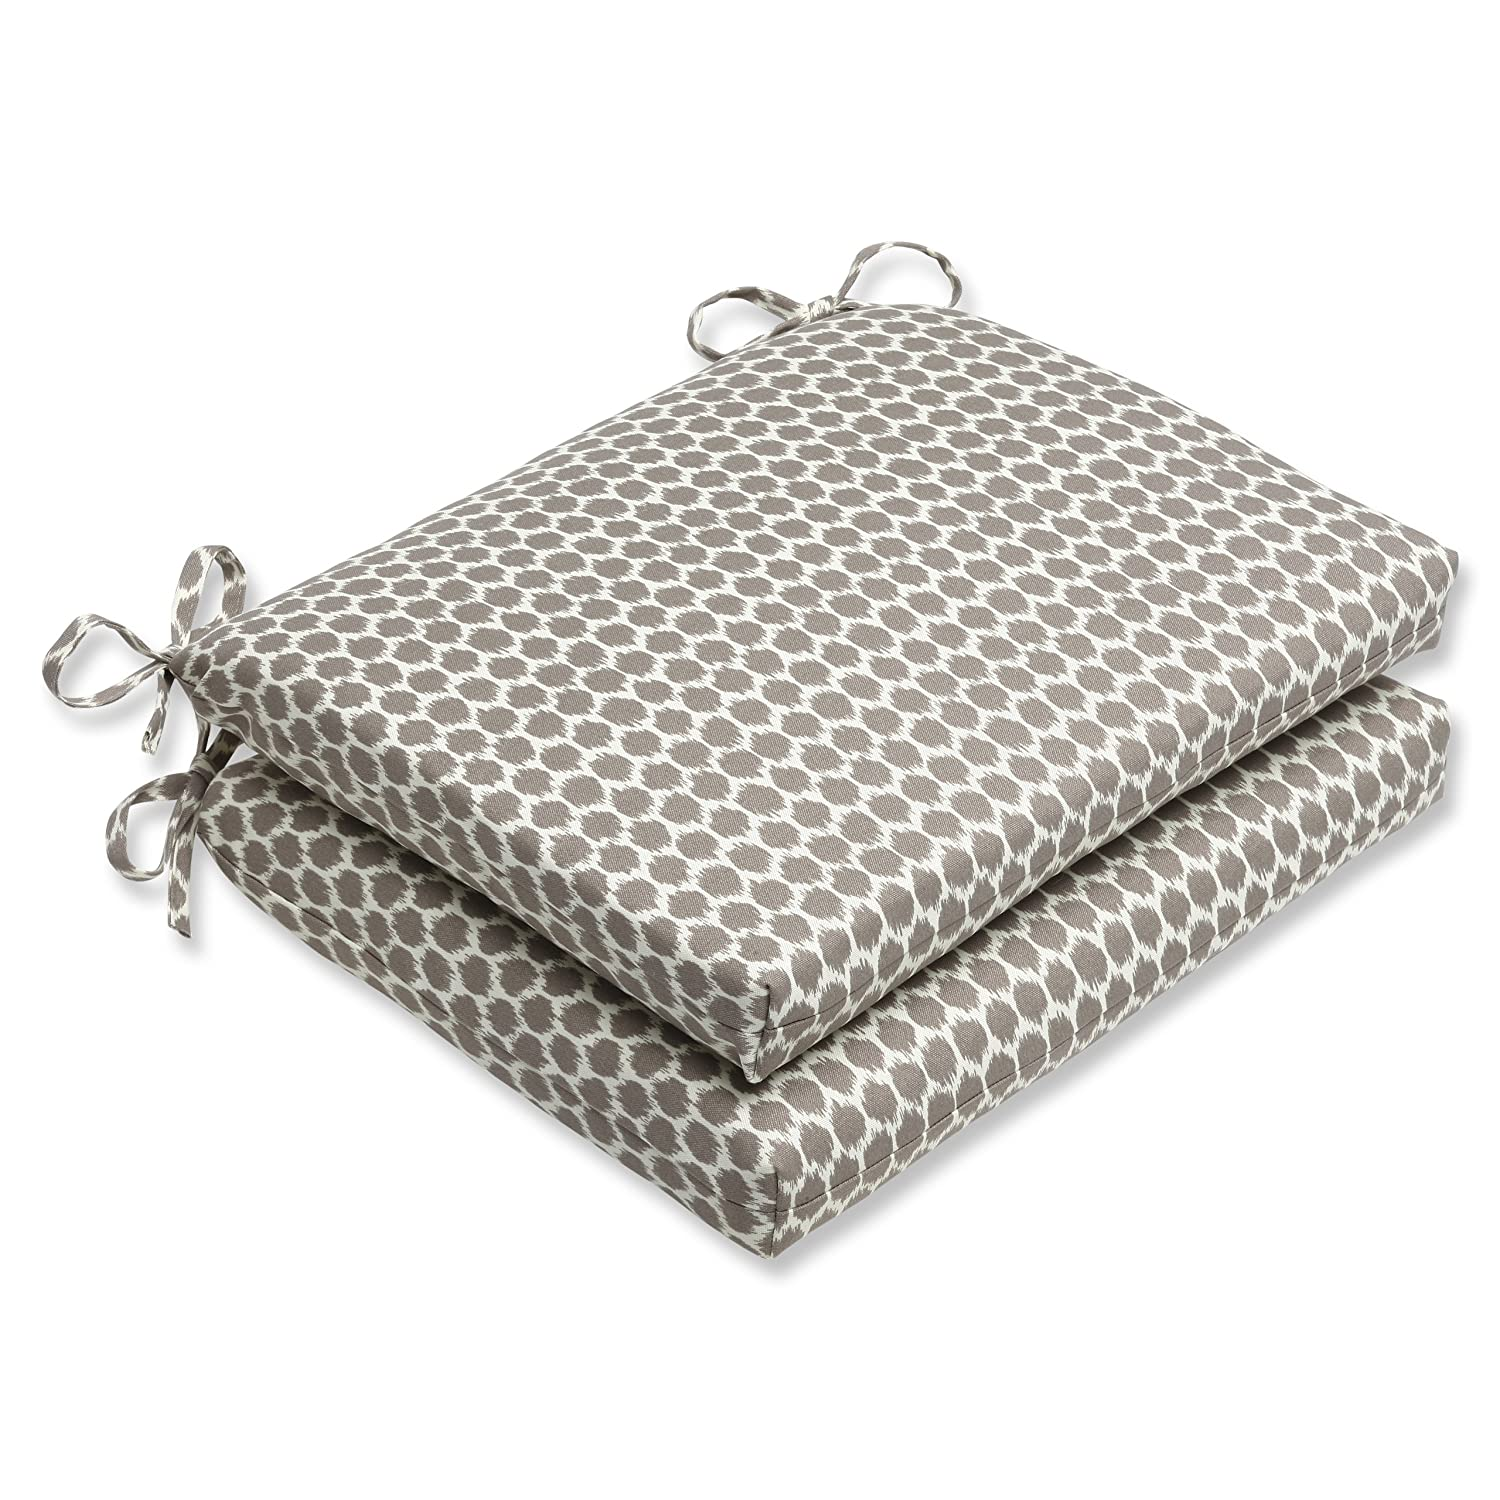 Pillow Perfect Outdoor Seeing Spots Sterling Squared Corners Seat Cushion, Set of 2